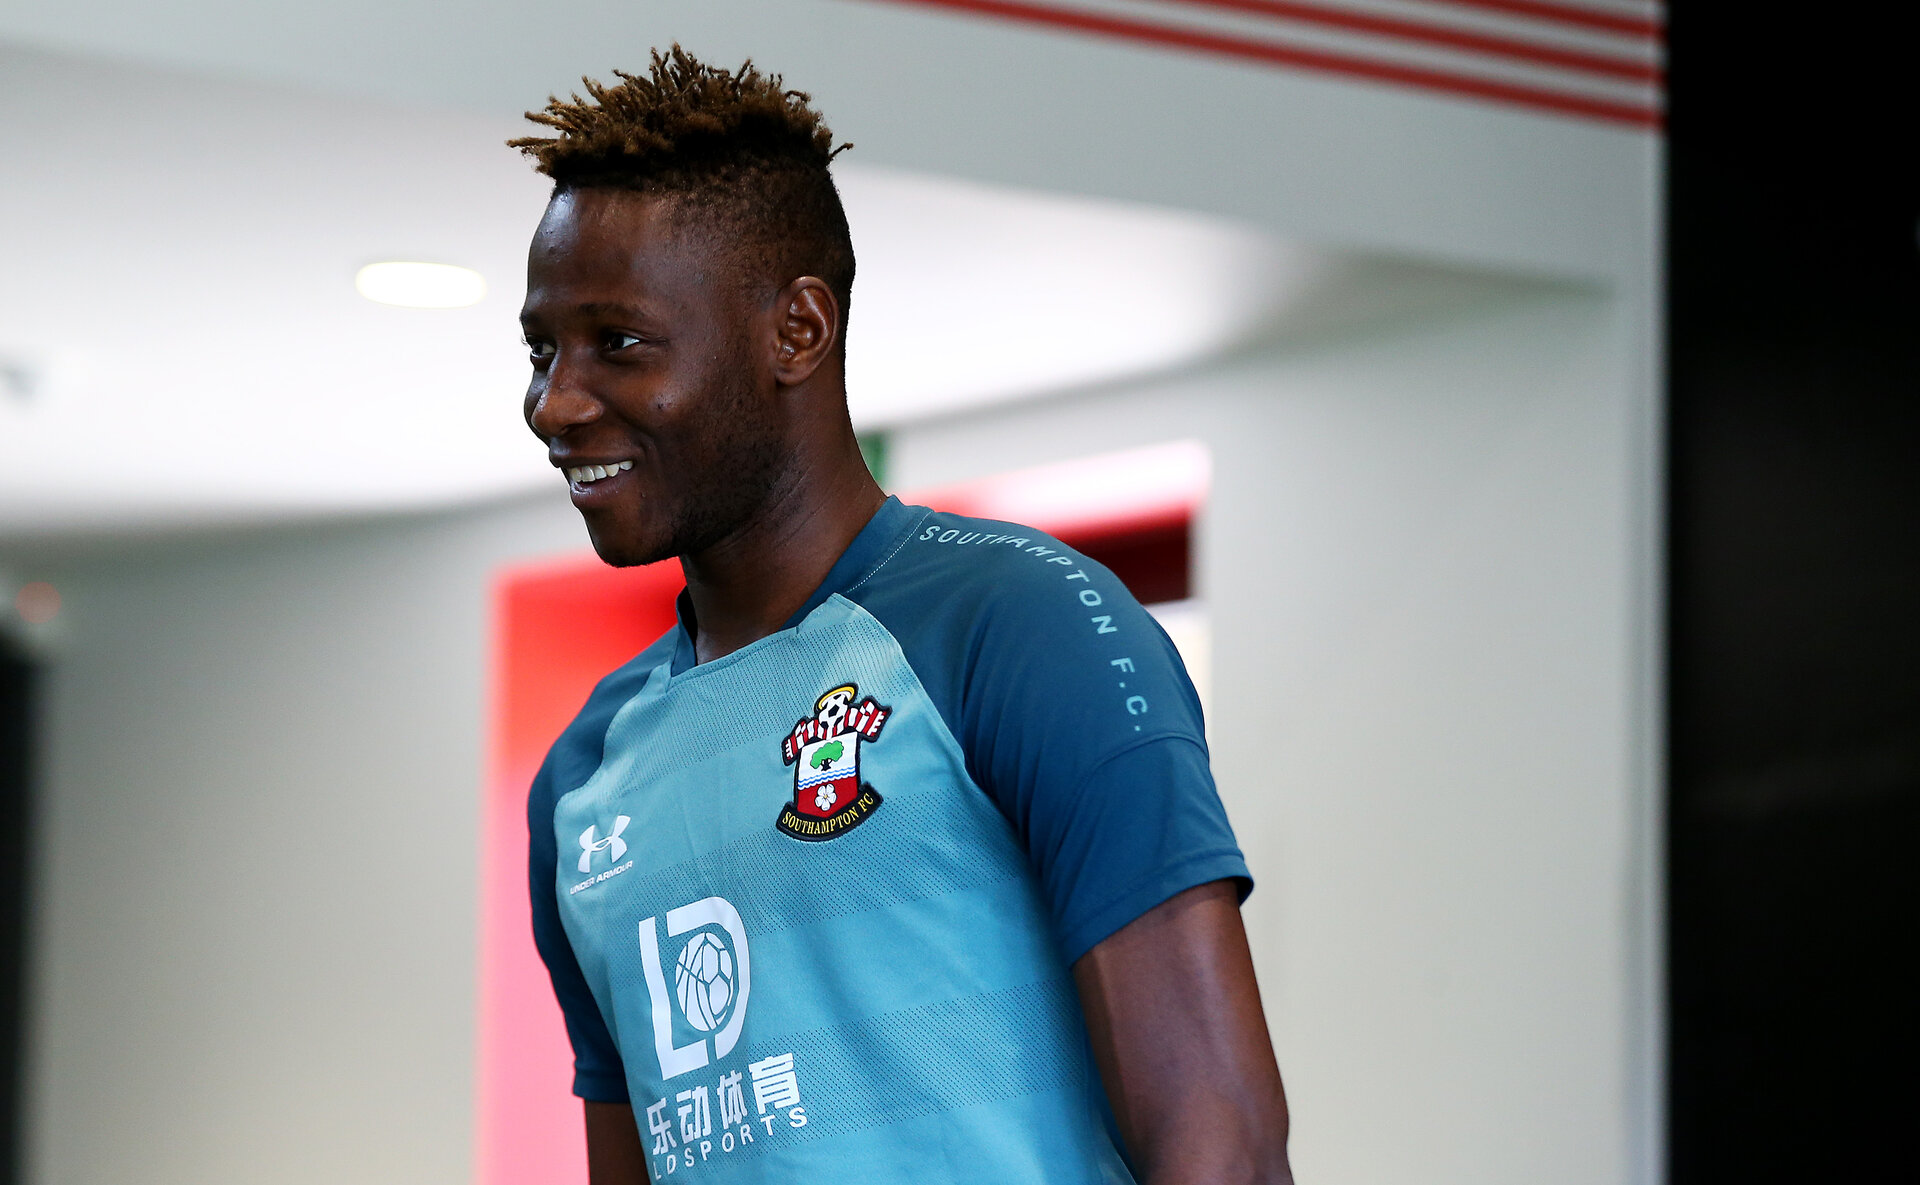 SOUTHAMPTON, ENGLAND - SEPTEMBER 15: Moussa Djenepo during a Southampton FC training/recovery session at the Staplewood Campus on September 15, 2019 in Southampton, England. (Photo by Matt Watson/Southampton FC via Getty Images)